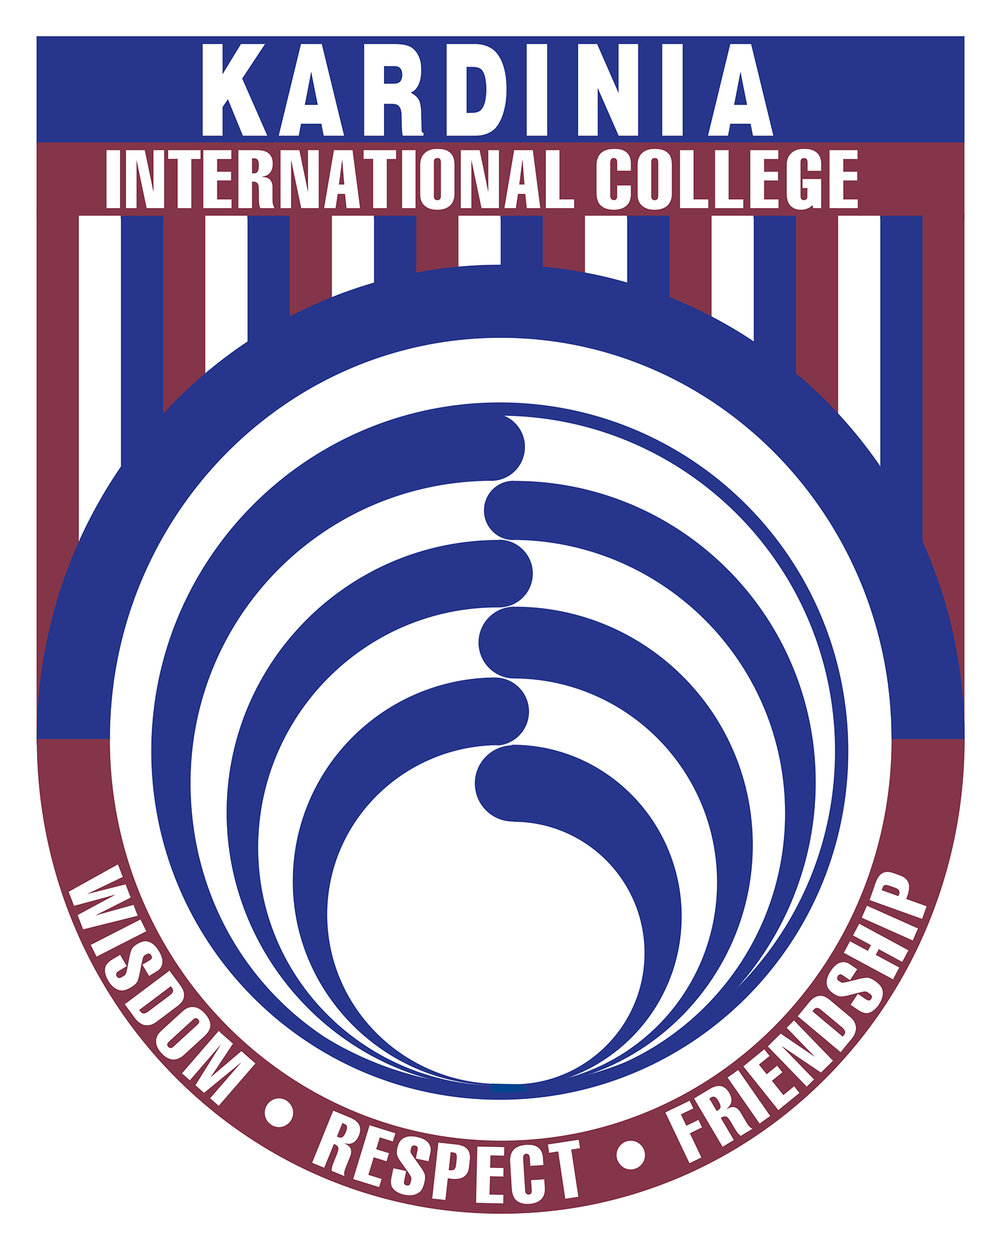 Kardinia International College.jpg